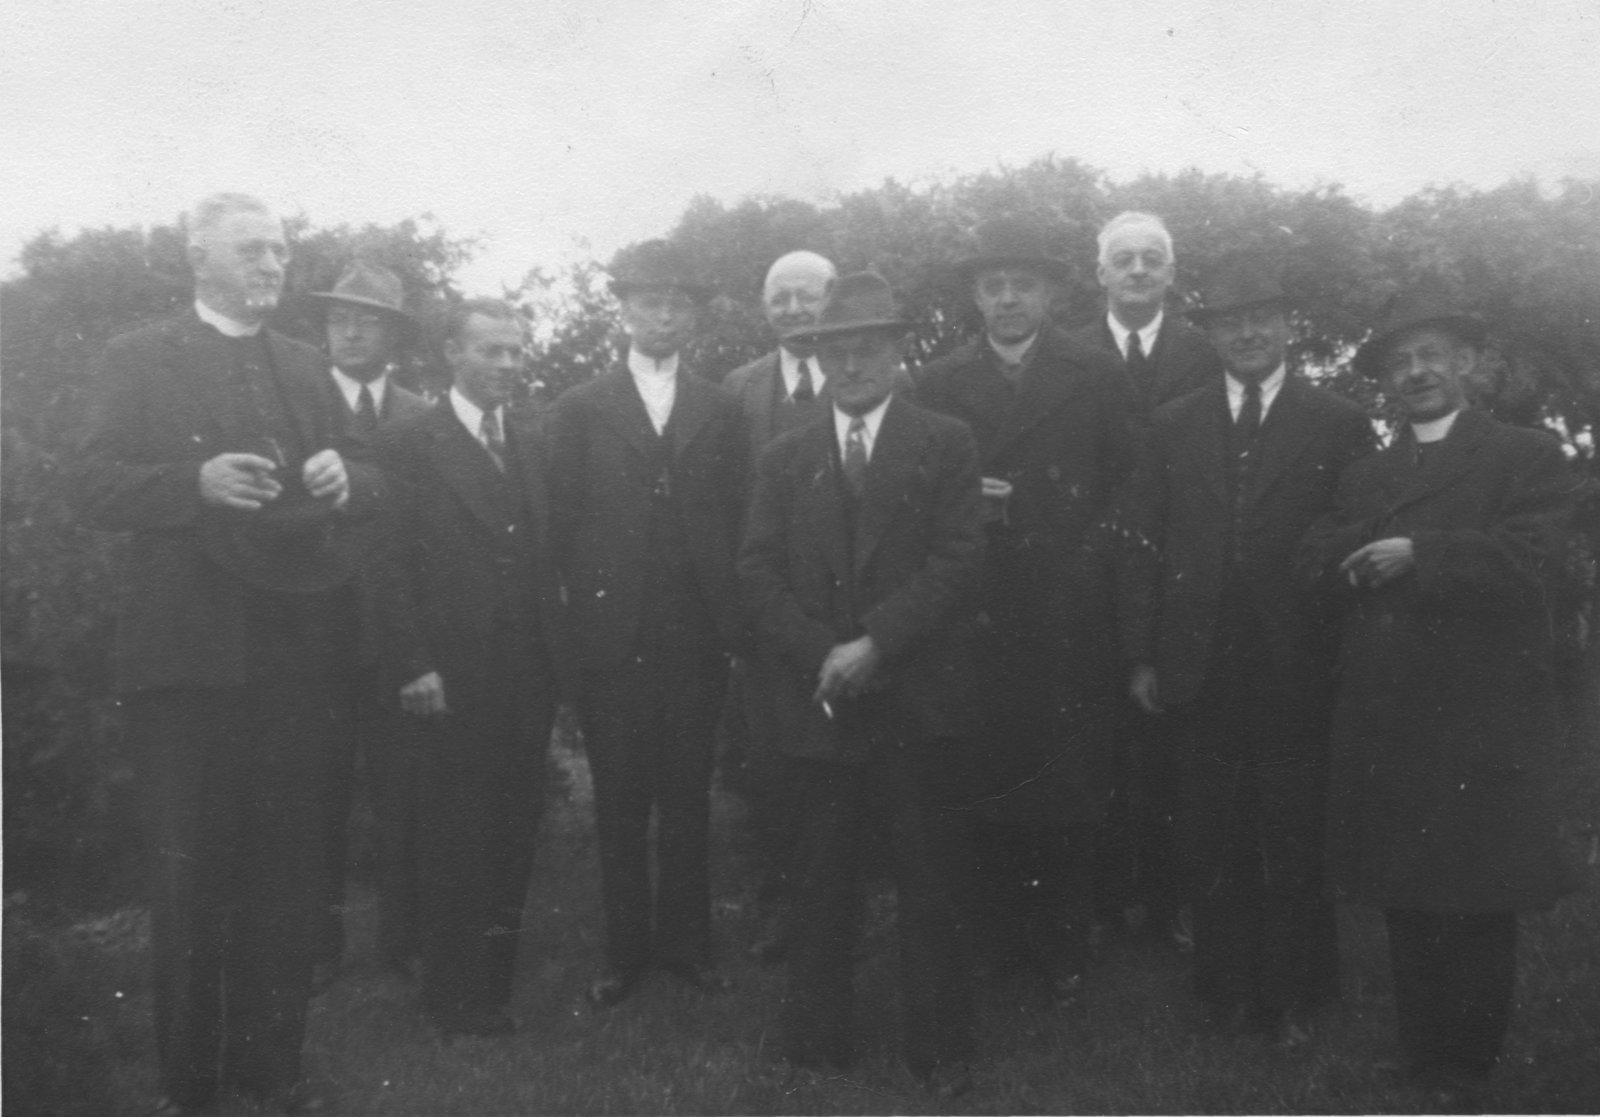 Group of pastors standing outdoors